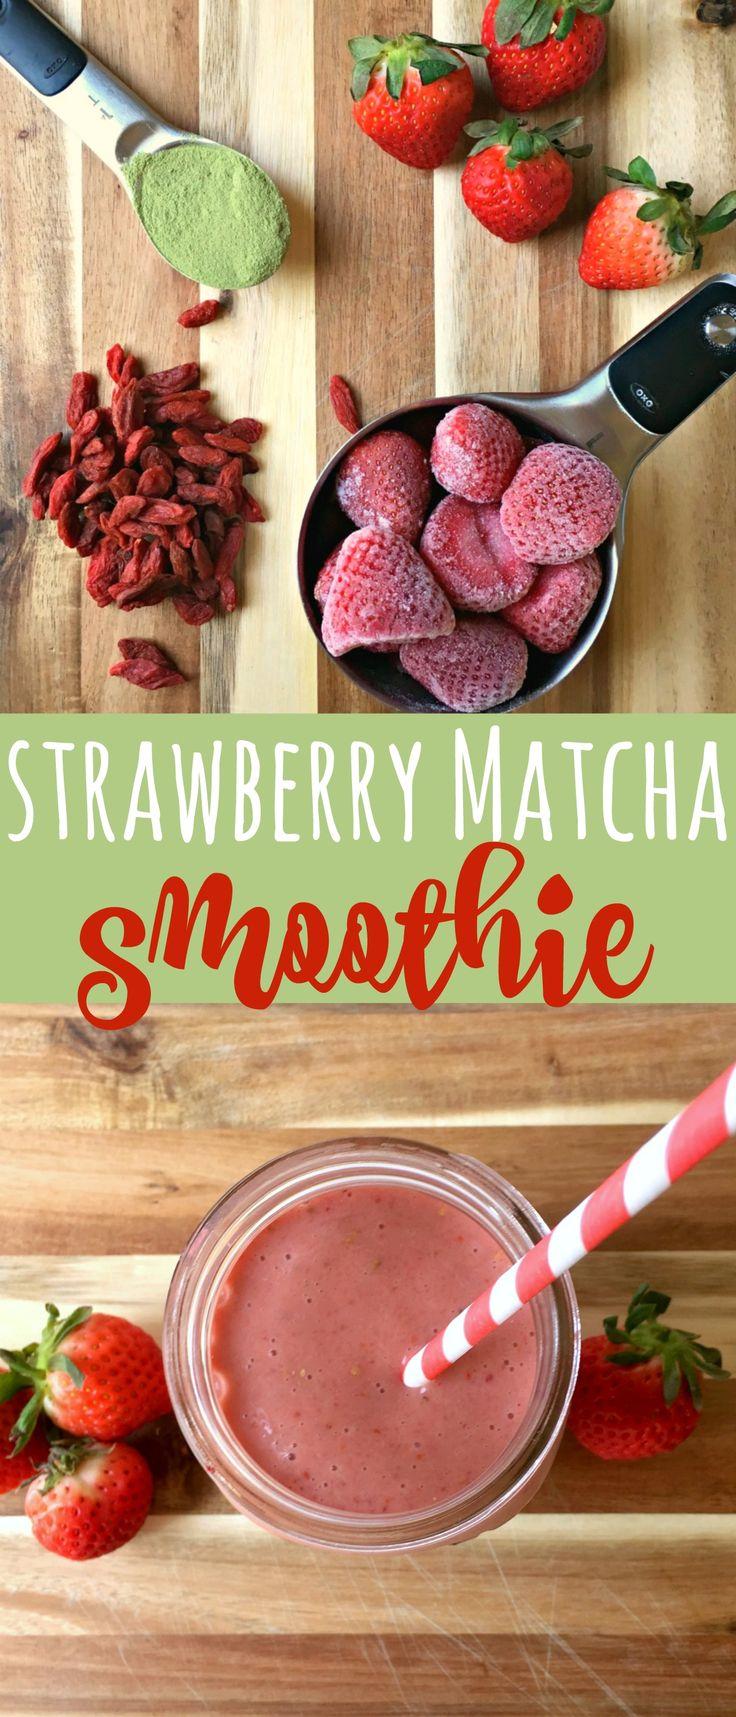 Full of beneficial properties and yummy flavor, this healthy strawberry matcha smoothie is quick and simple to blend up any time of the day.